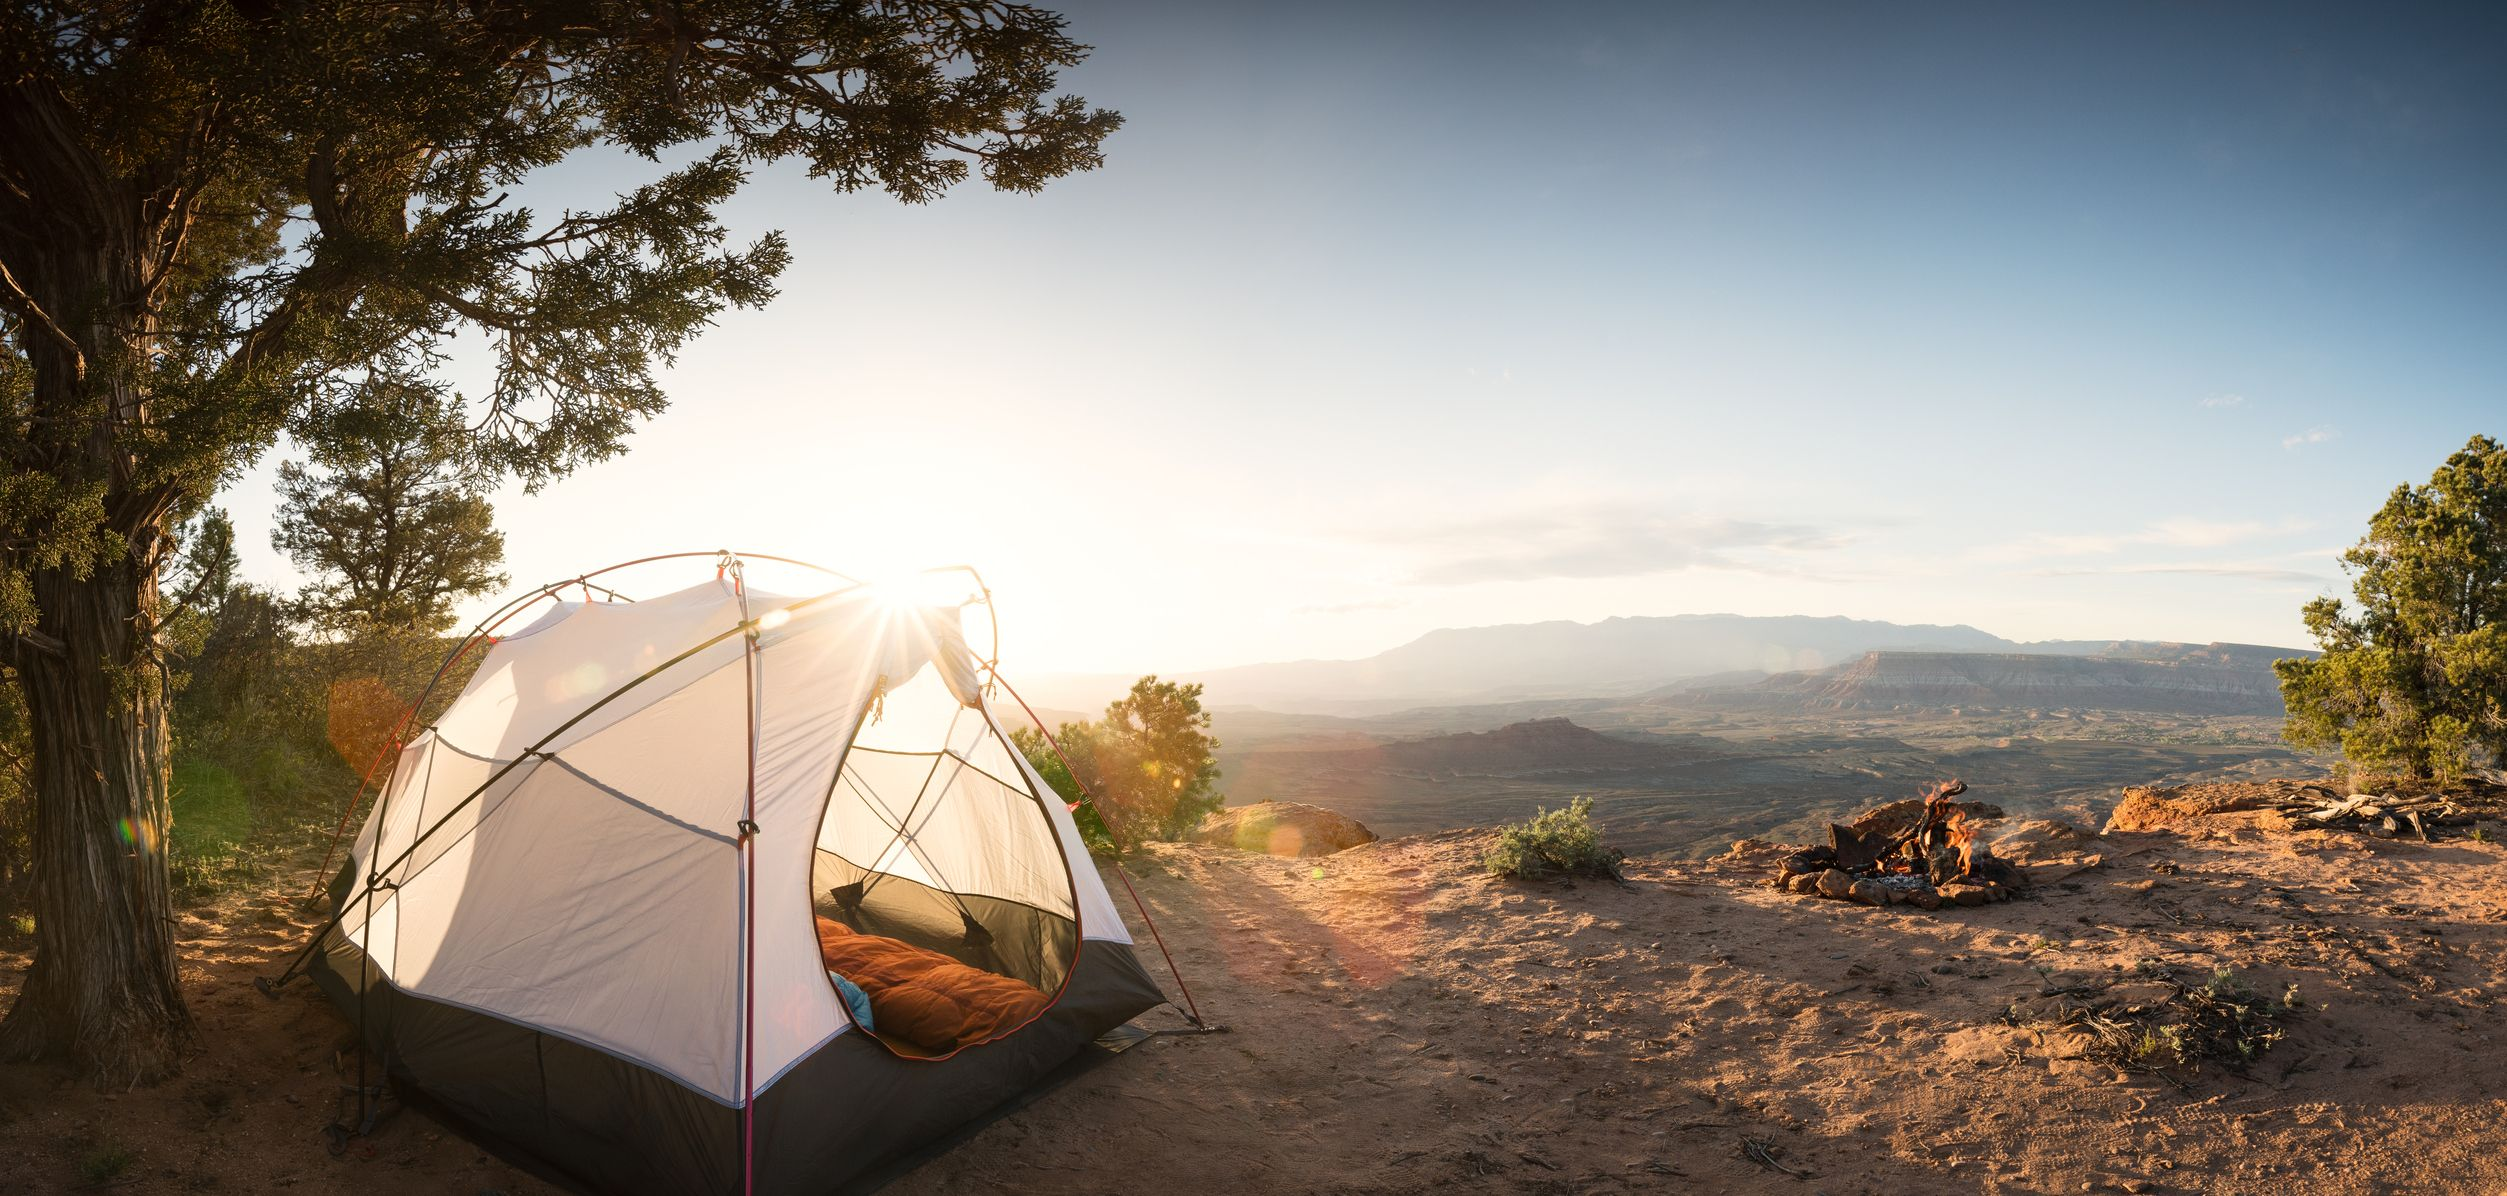 The 9 Best Tents for Camping and Backpacking